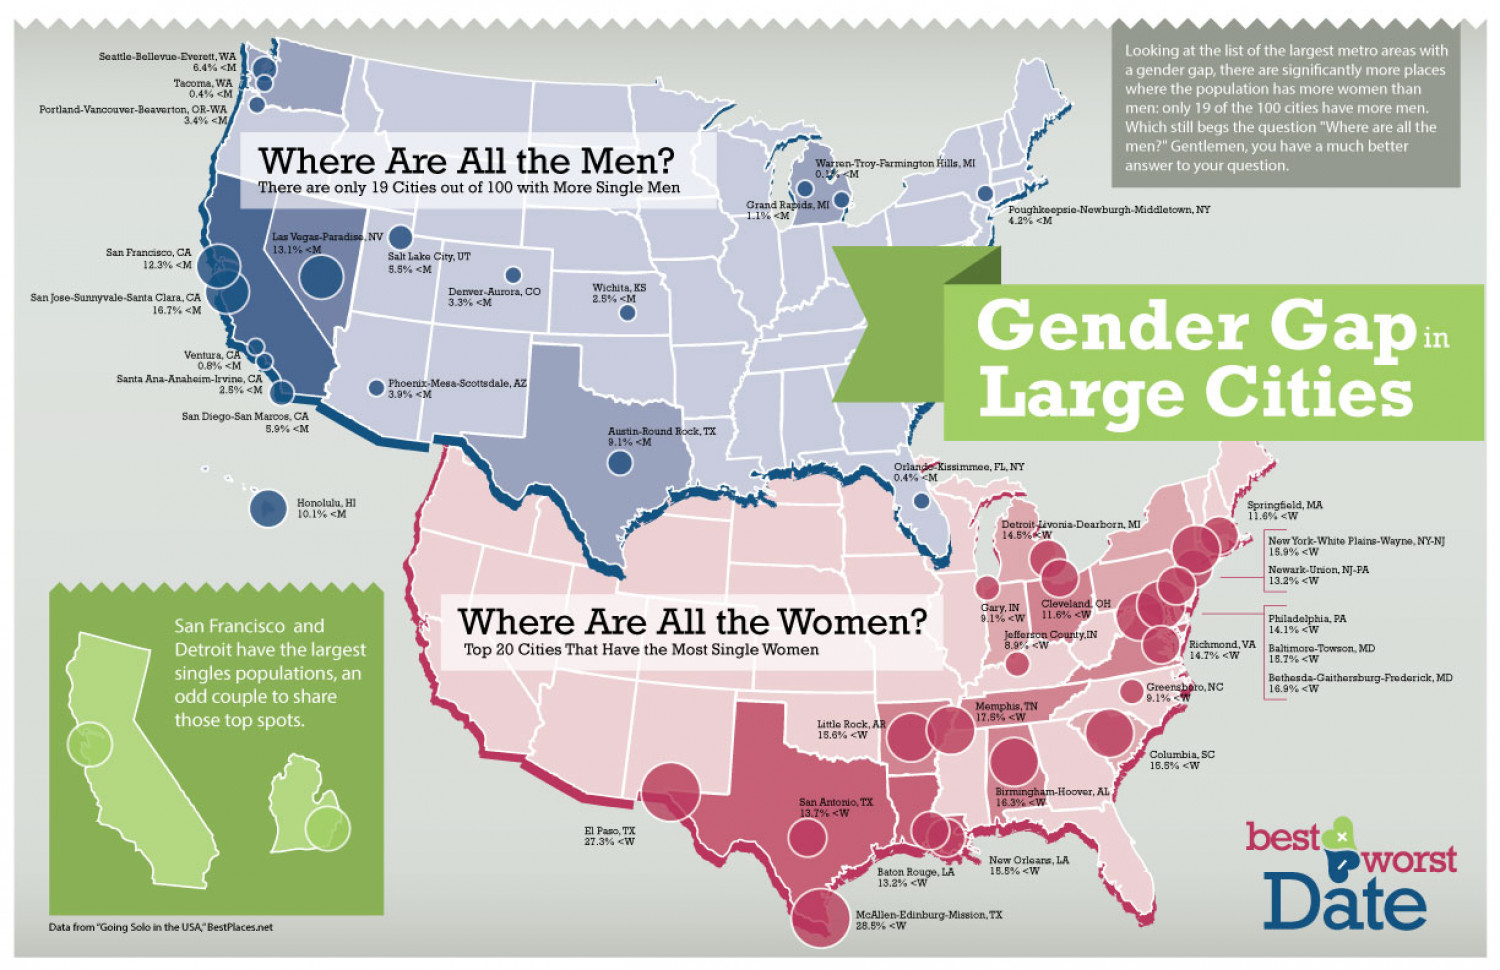 Gender Gap in Large U.S. Cities Infographic